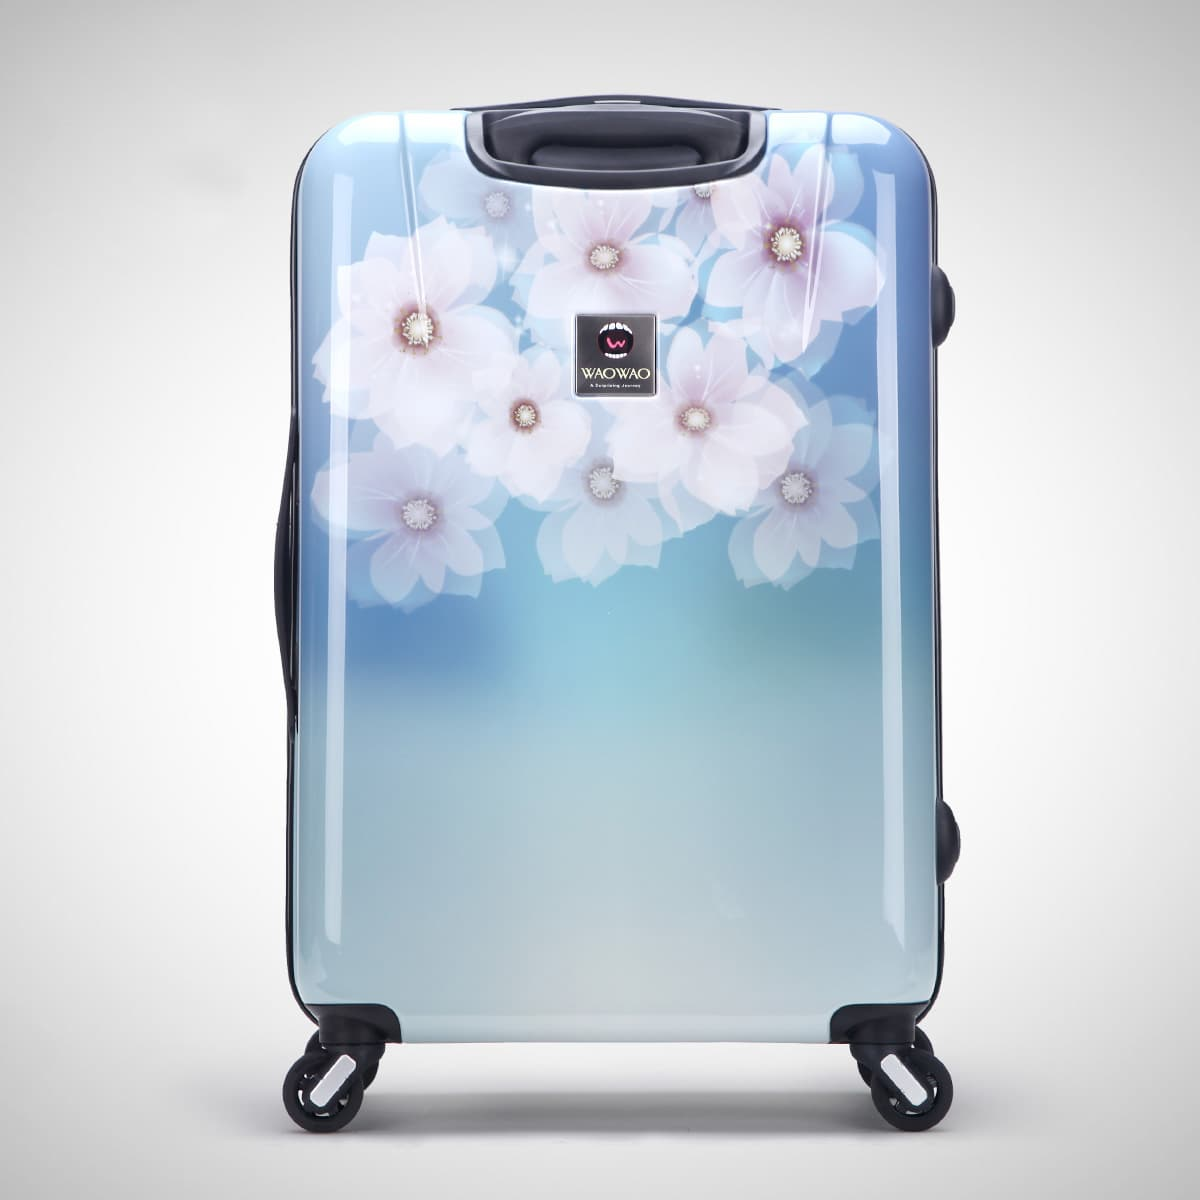 ABS PC hardside trolley luggage set